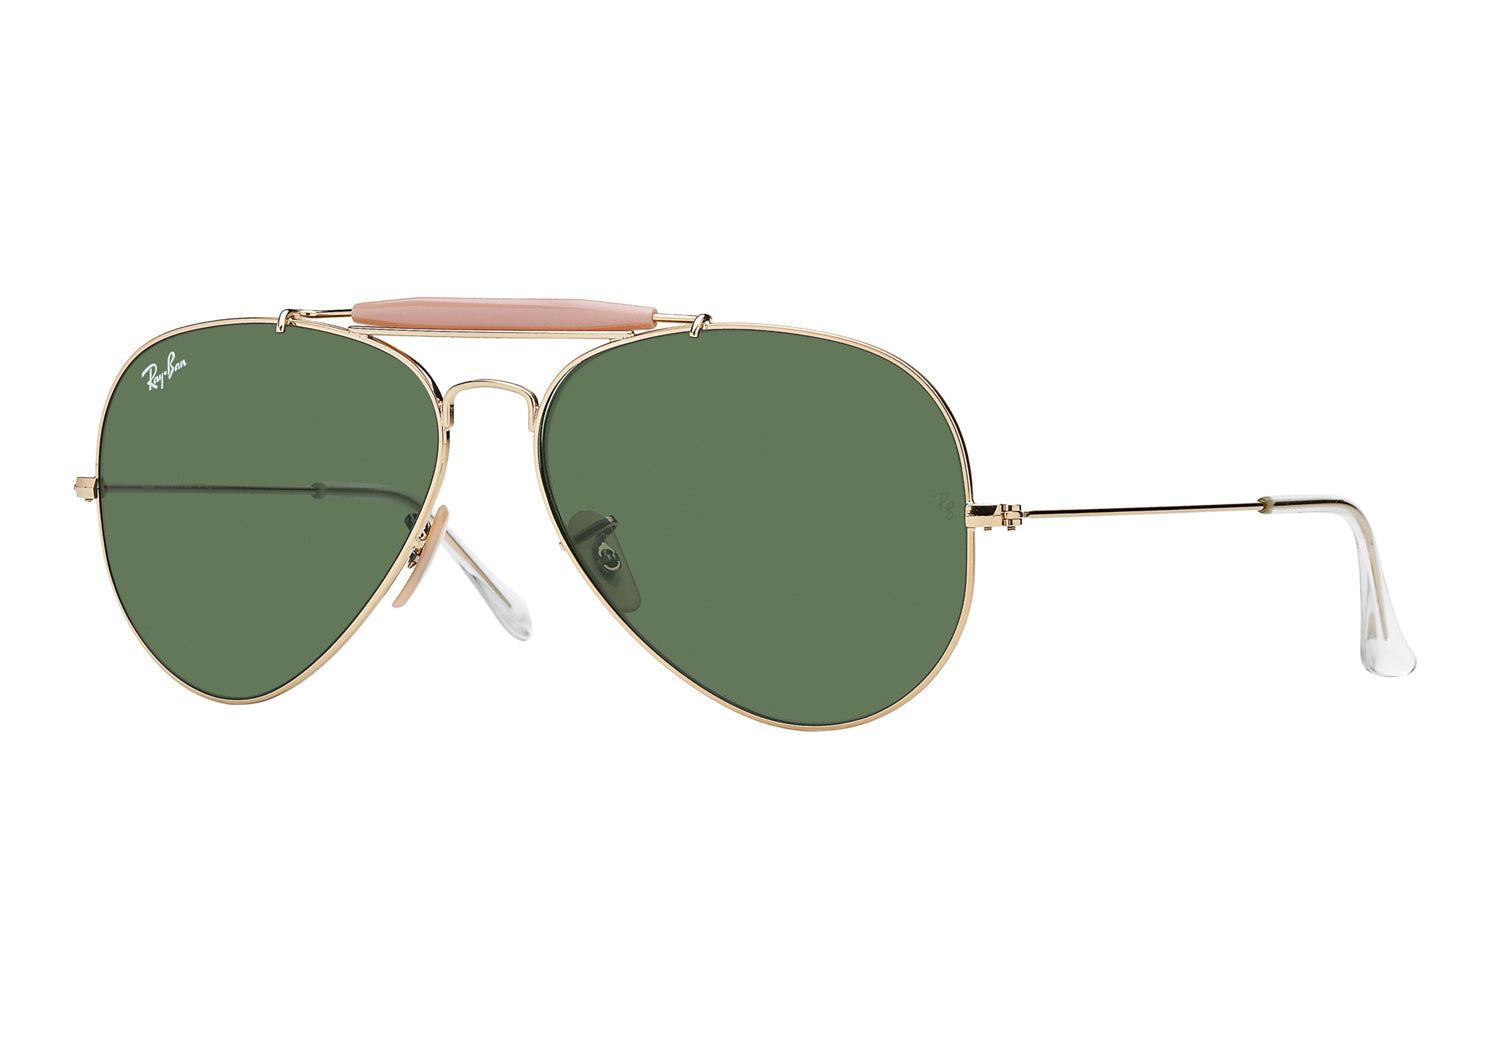 Ray-ban RB3029 Outdoorsman II 62mm Prescription Sunglasses